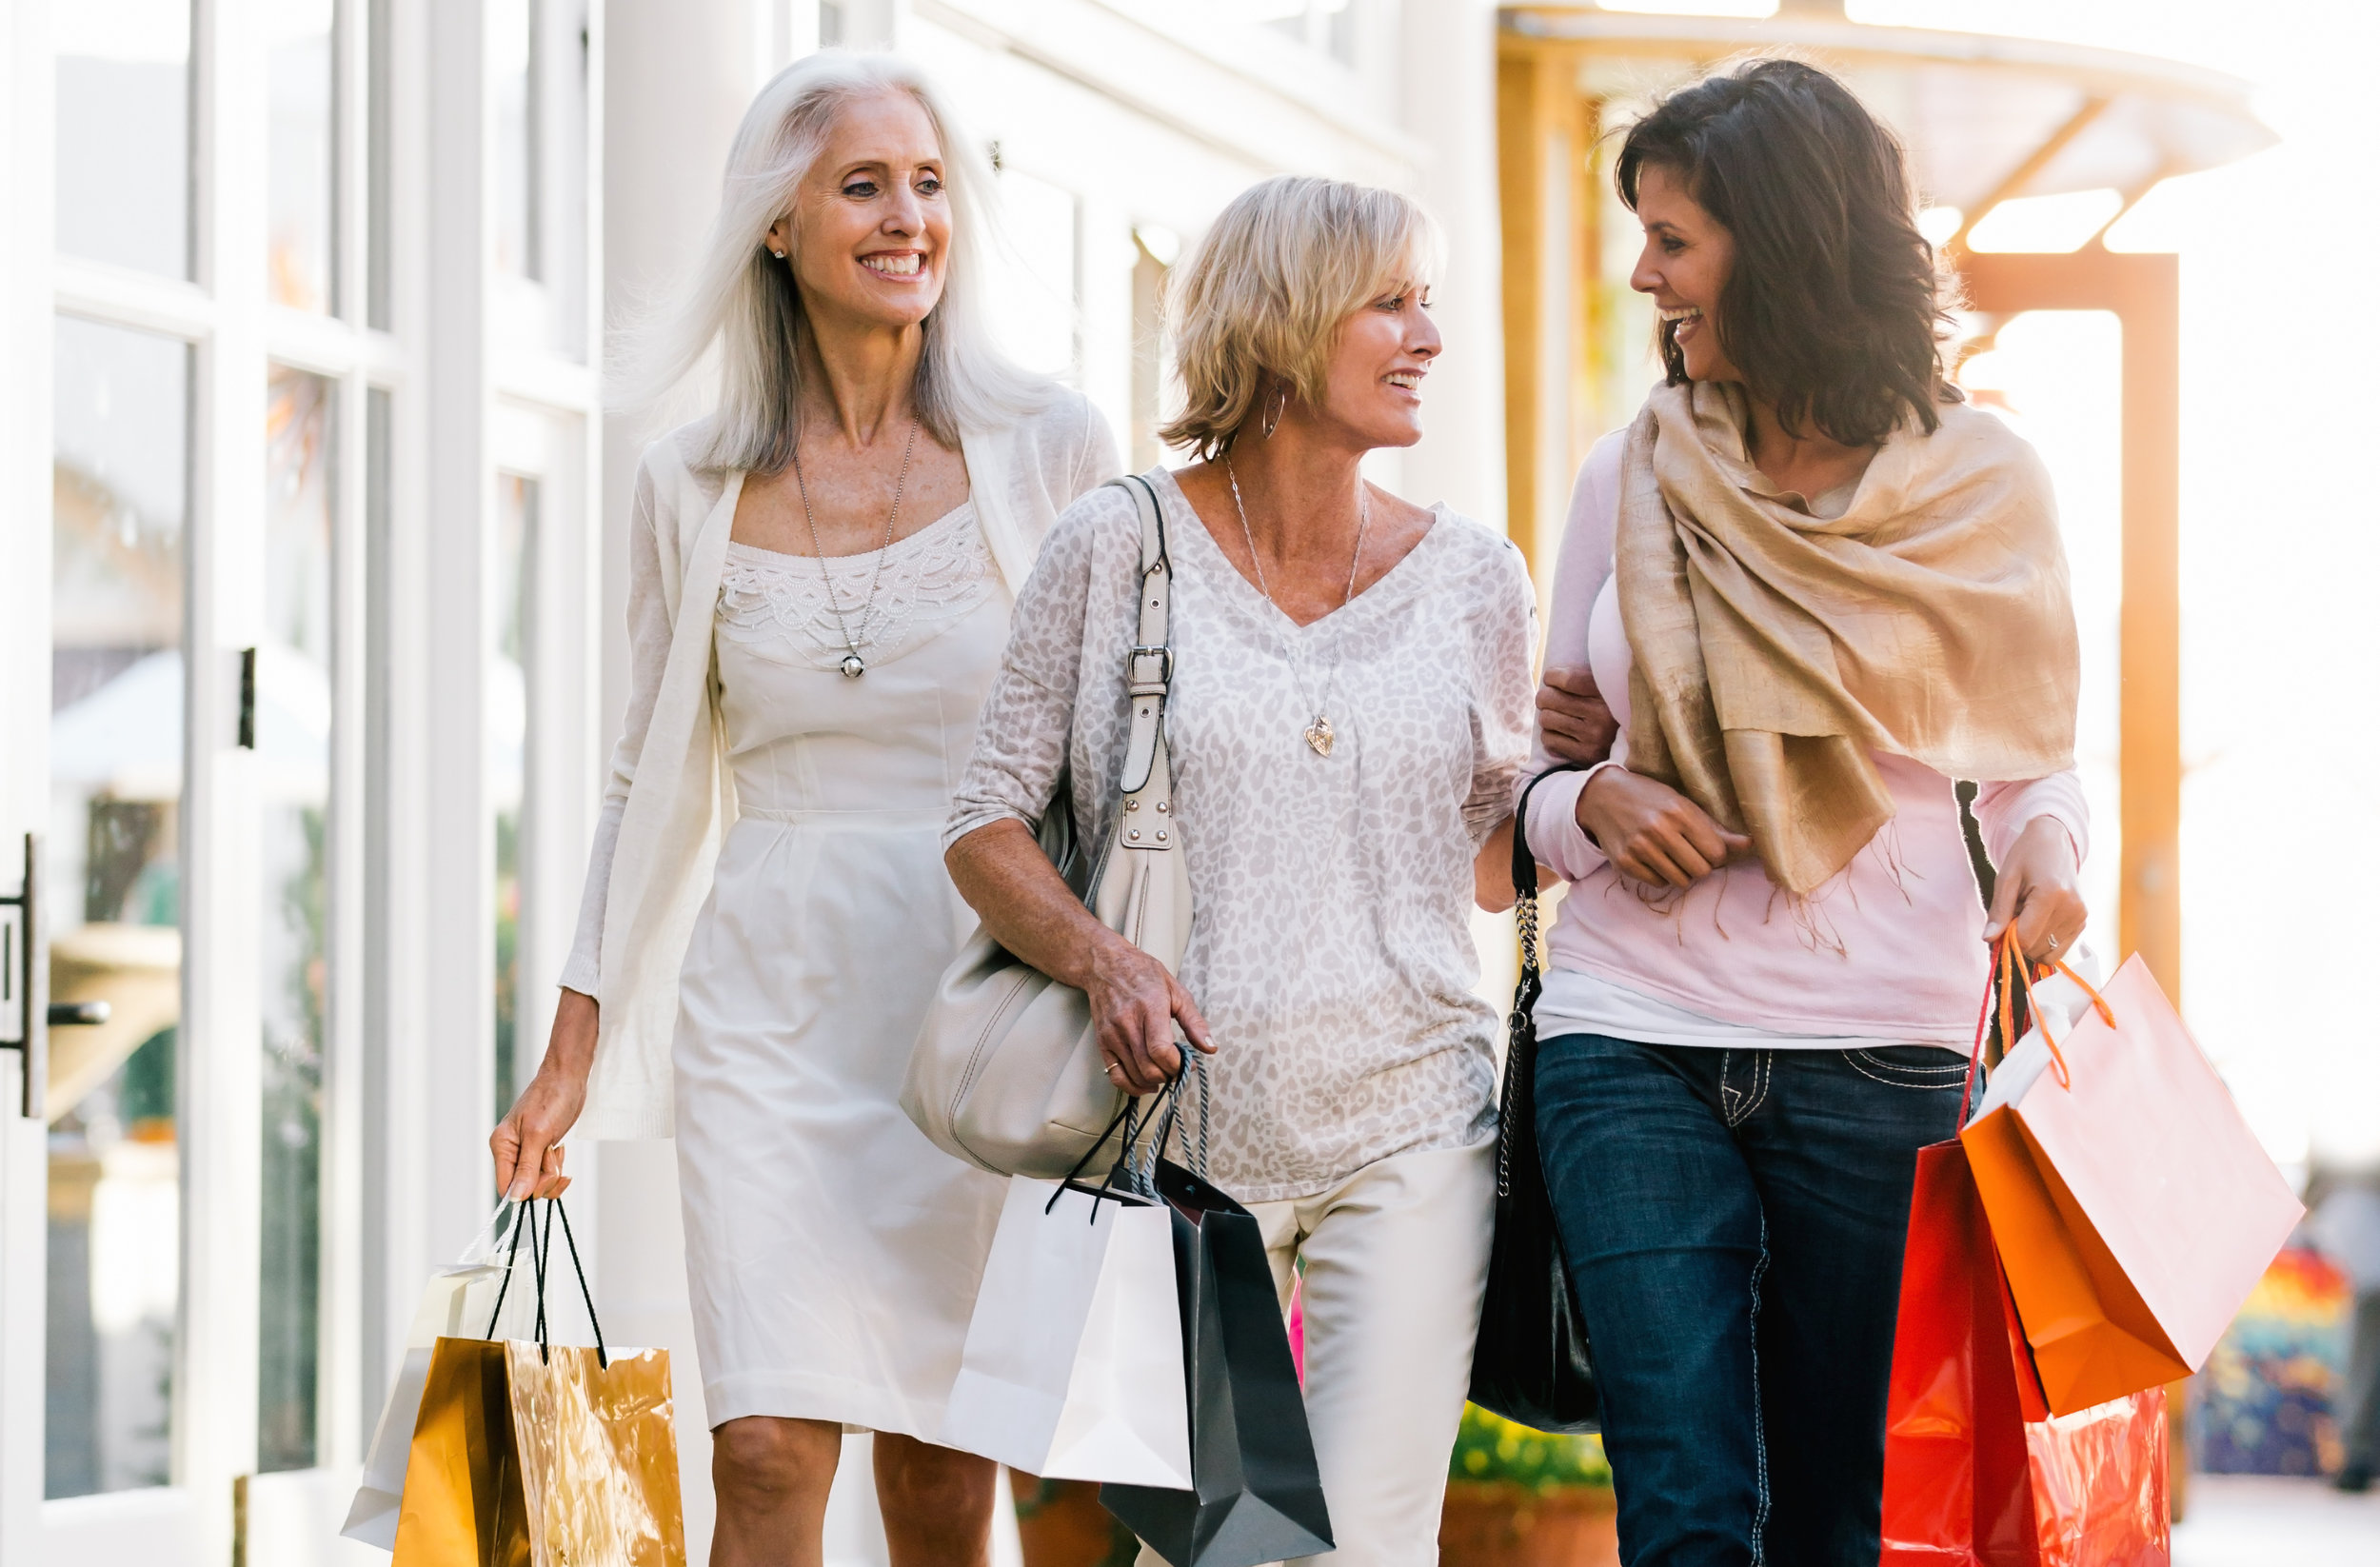 18 Best Clothing Stores for Women Over 50 of Every Style